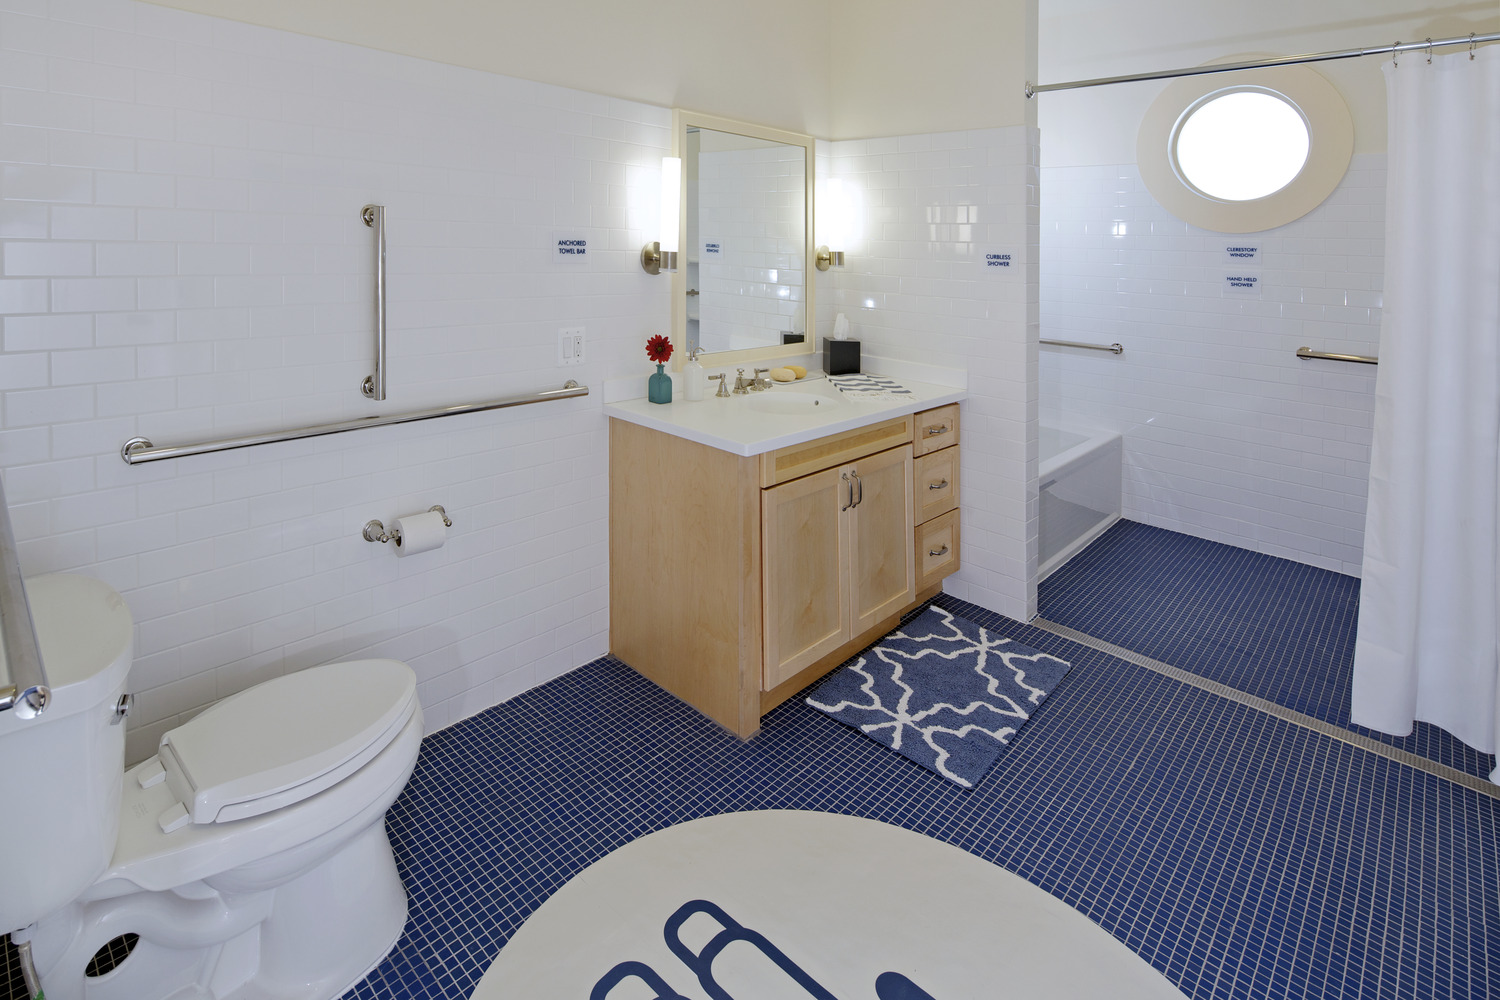 CBG builds Wounded Warrior Home Project, a Two Innovative Prototype Homes for Wounded Warriors at Fort Belvoir in Fort Belvoir, VA - Image #7